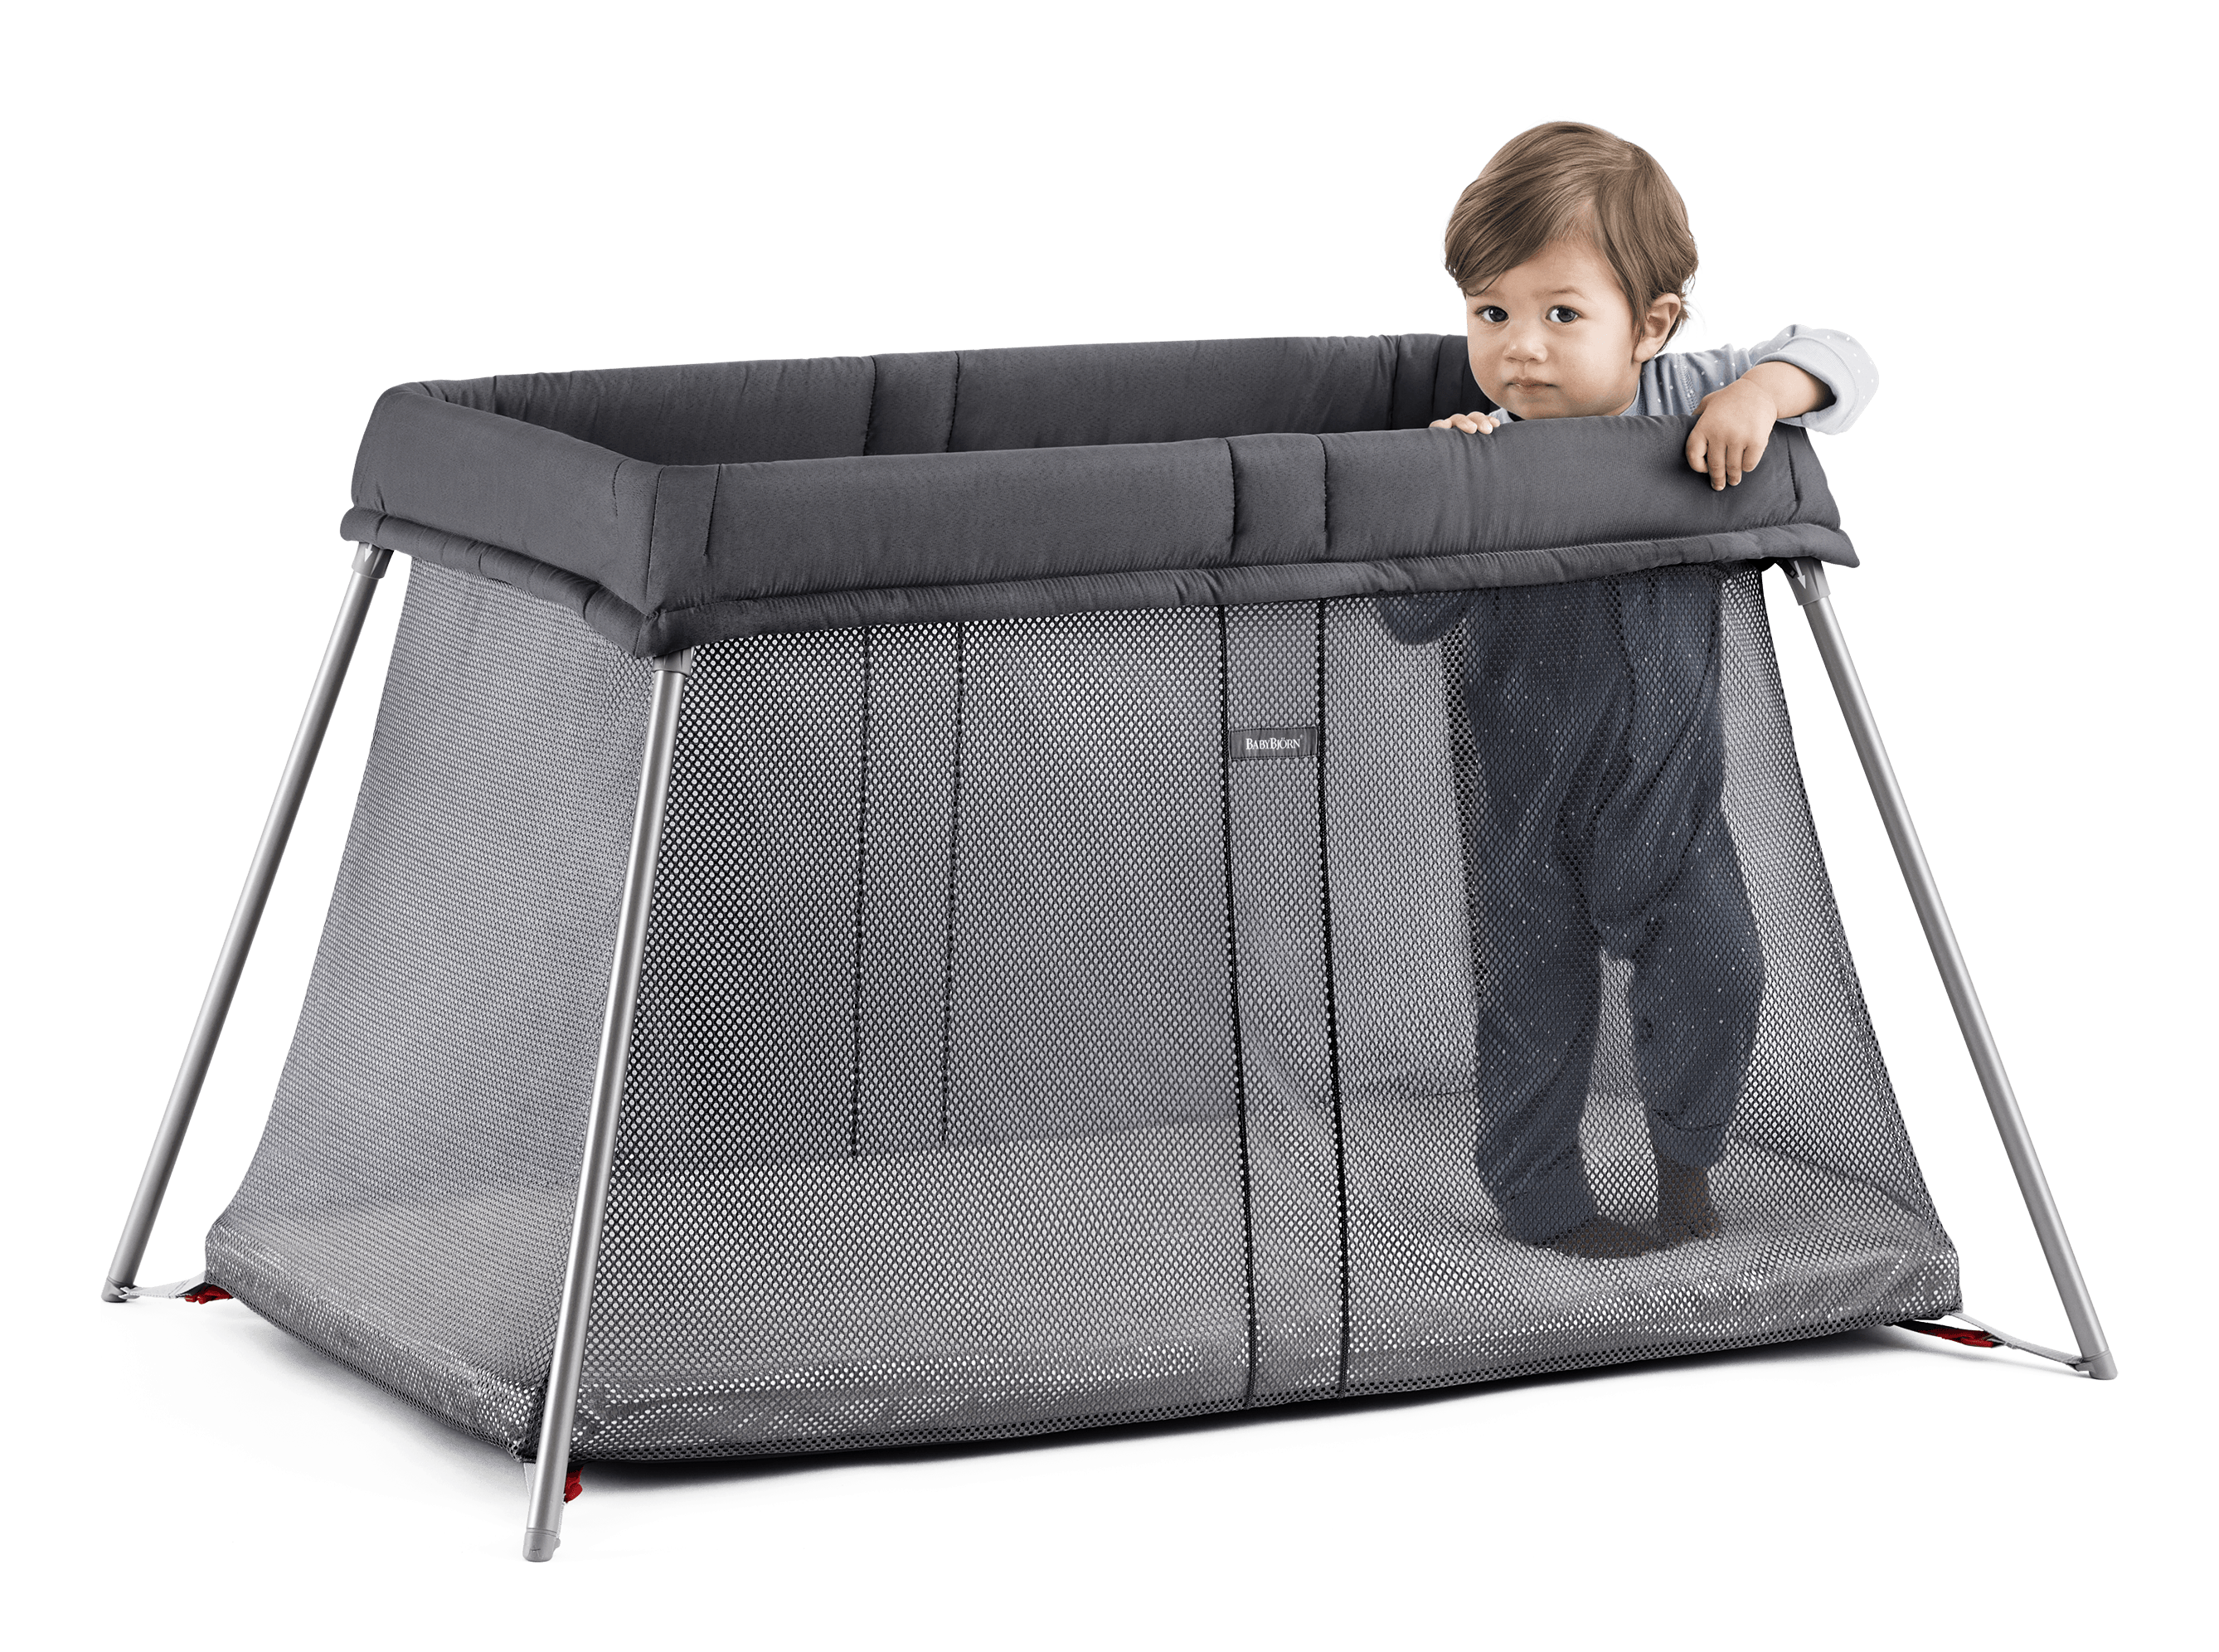 Small travel crib for baby – easy to use | BABYBJÖRN